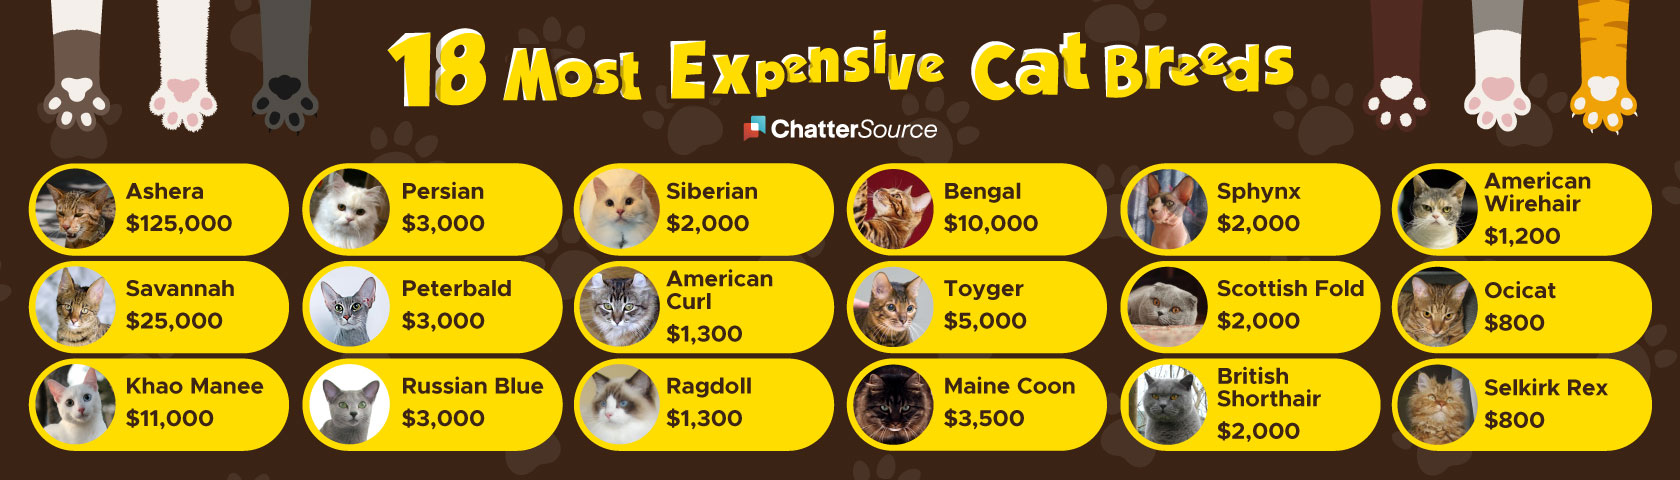 Most expensive cat breeds infographic